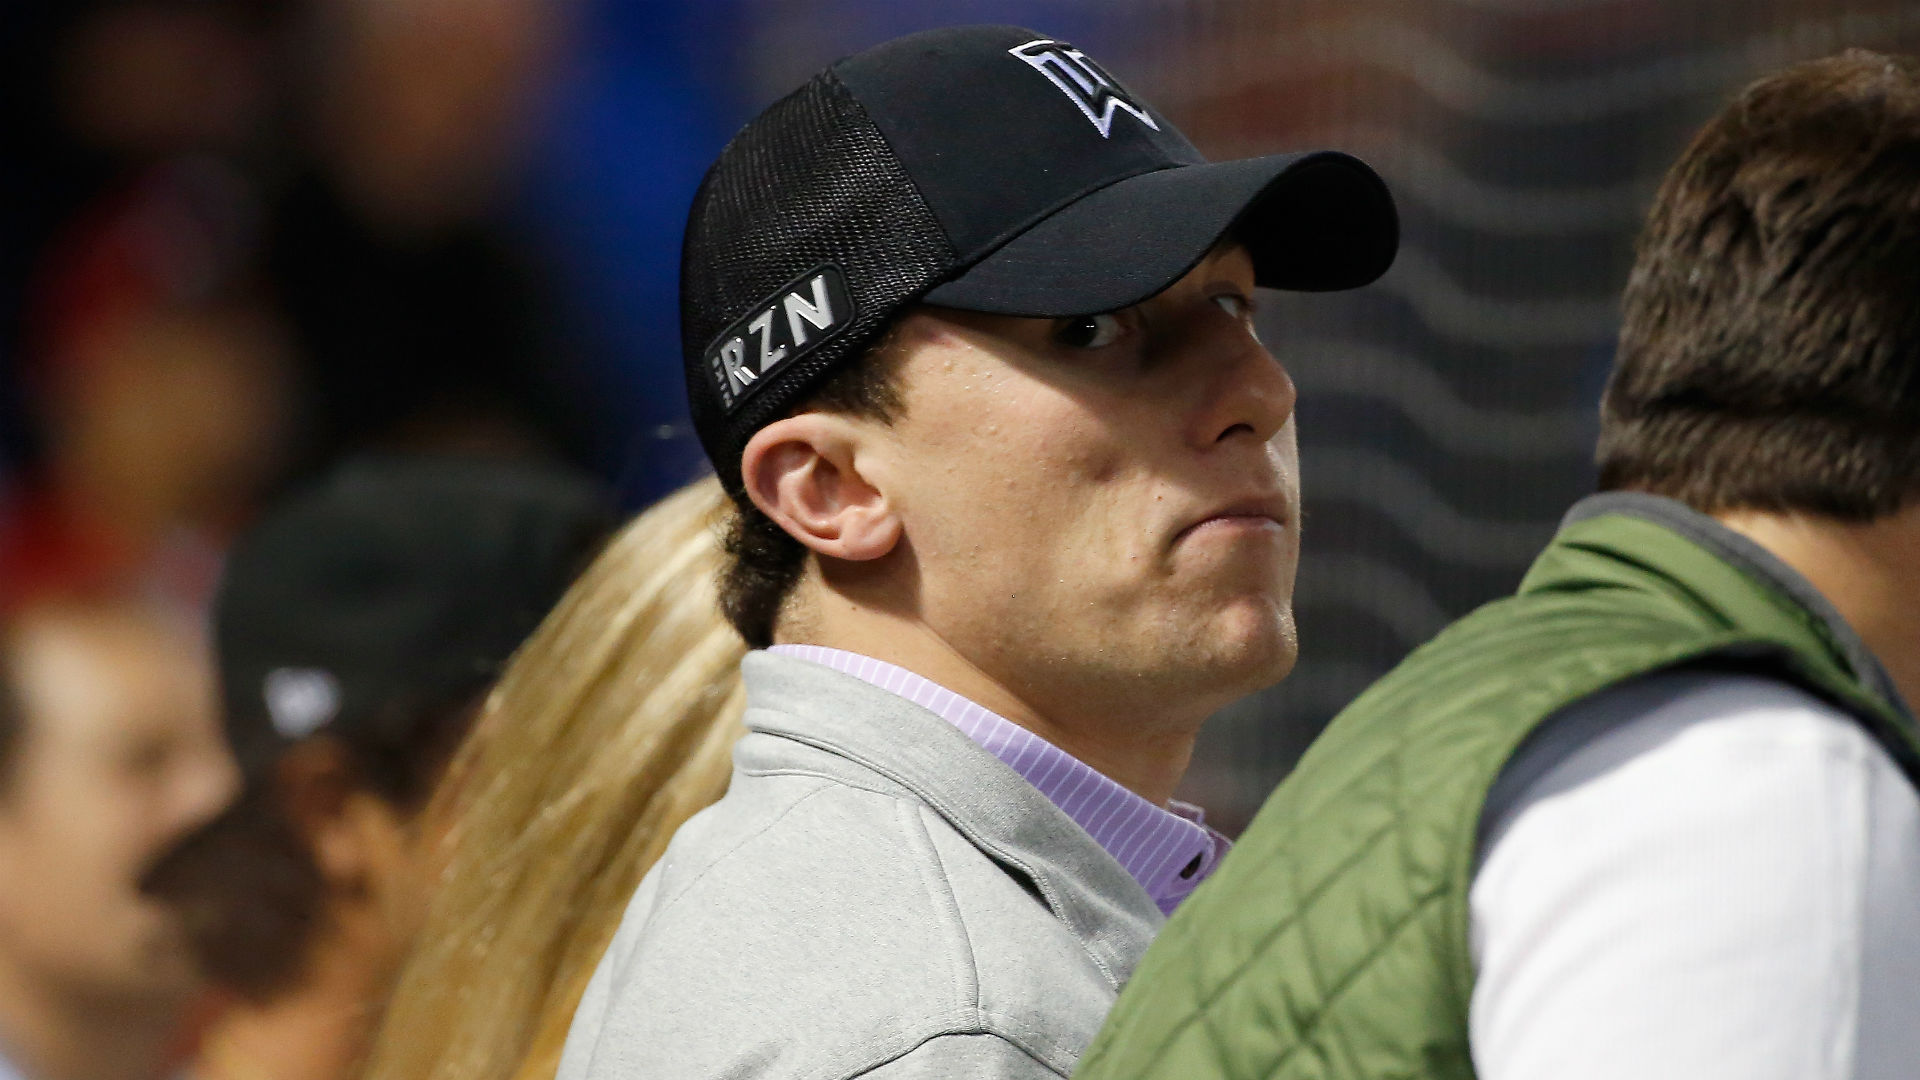 Johnny Manziel gets help from LeBron James' business partner